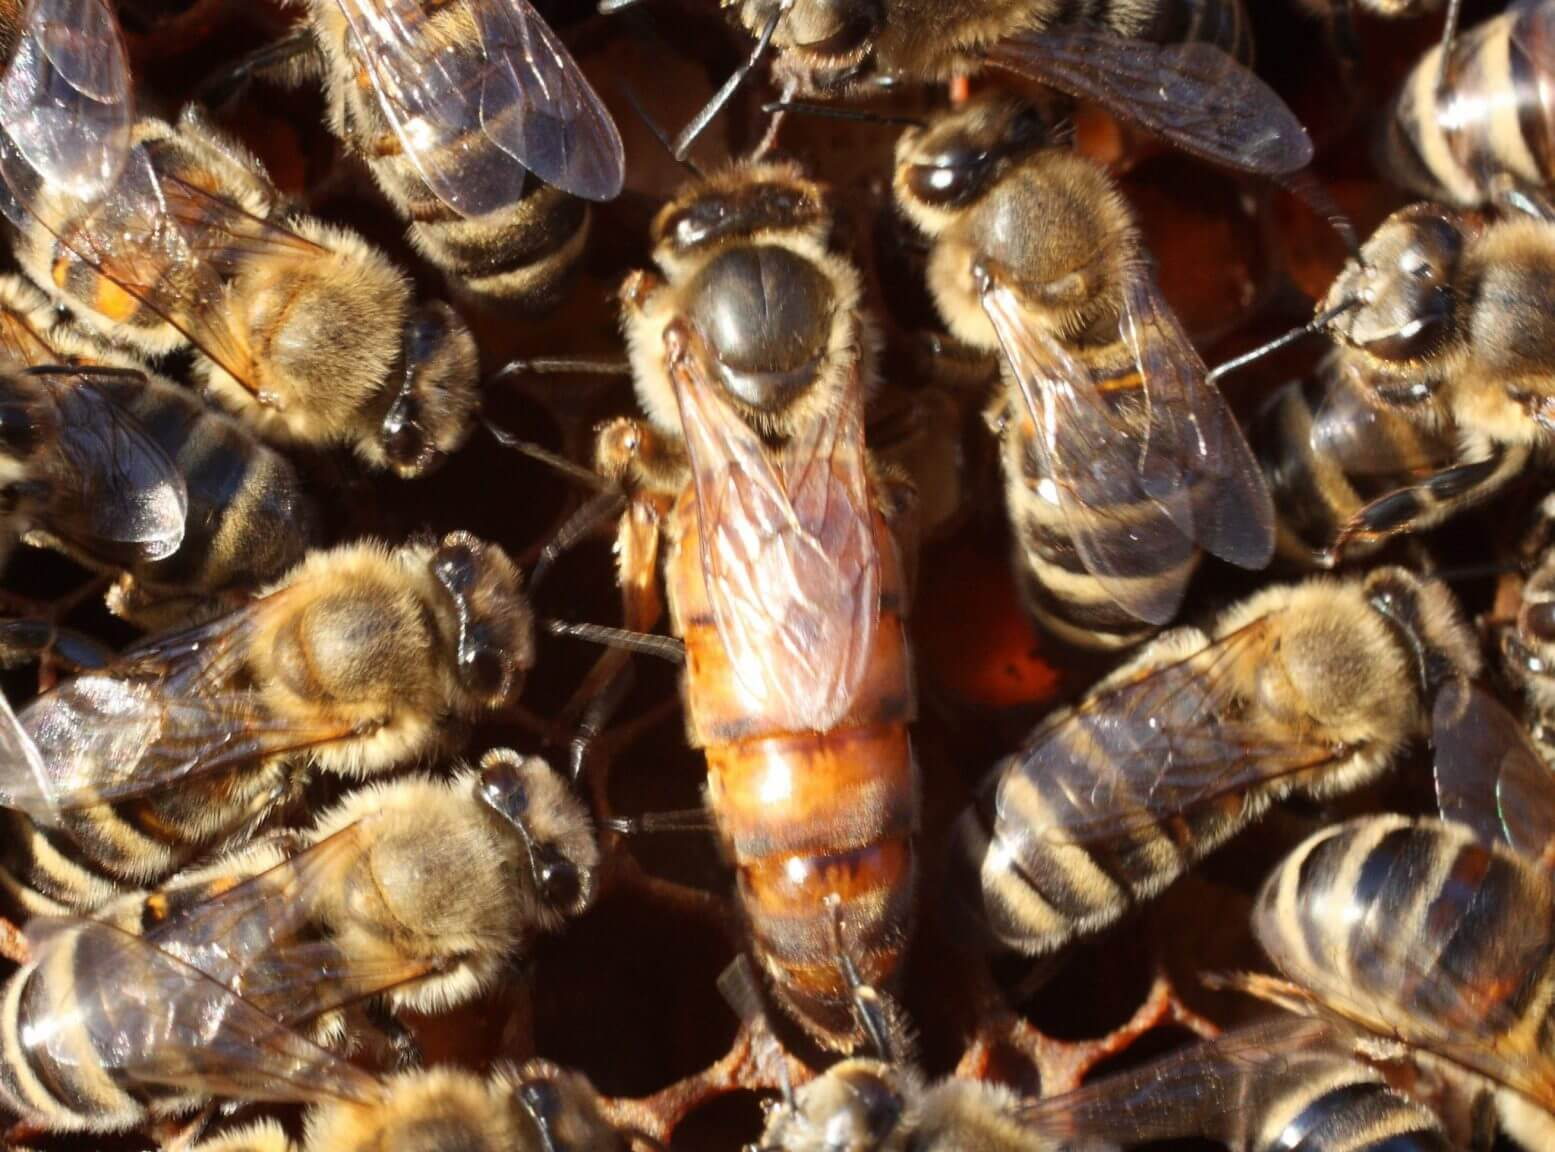 Bees commonly exterminate their fellows if this is beneficial to the hive.